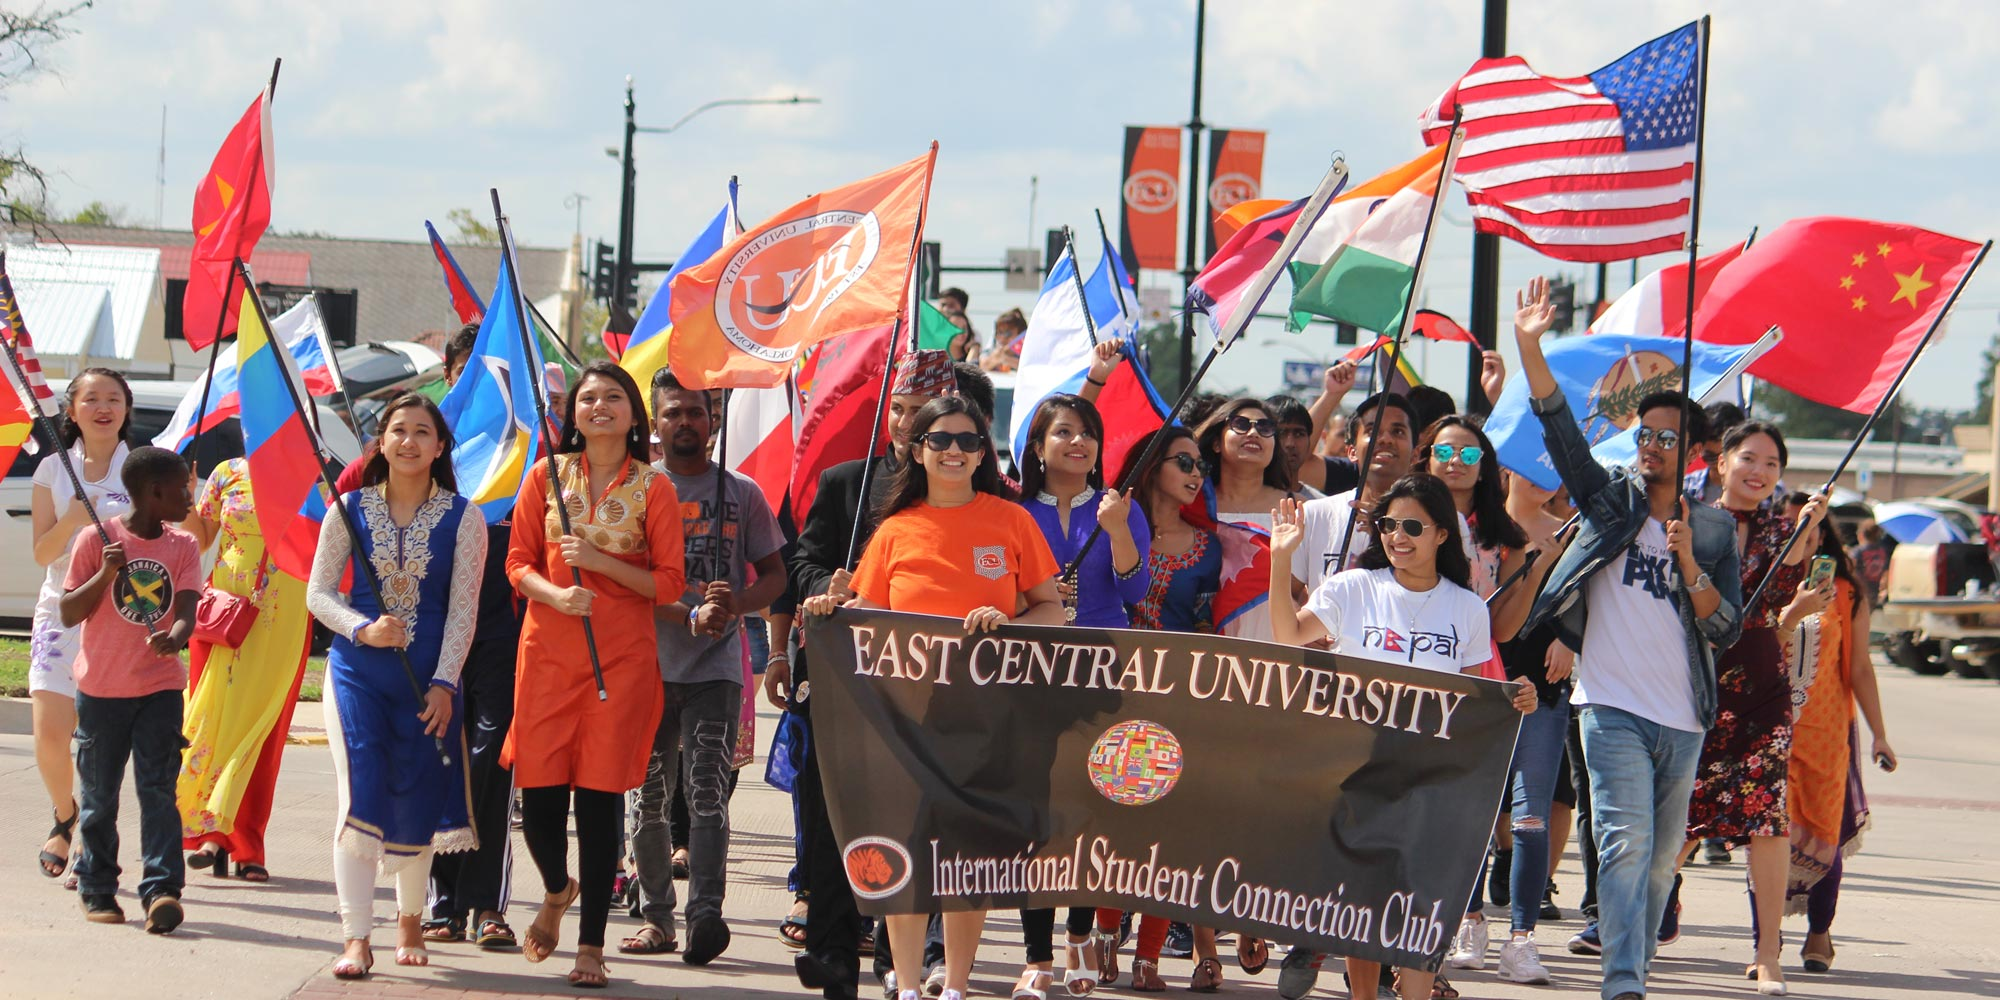 international student connection club members in parade